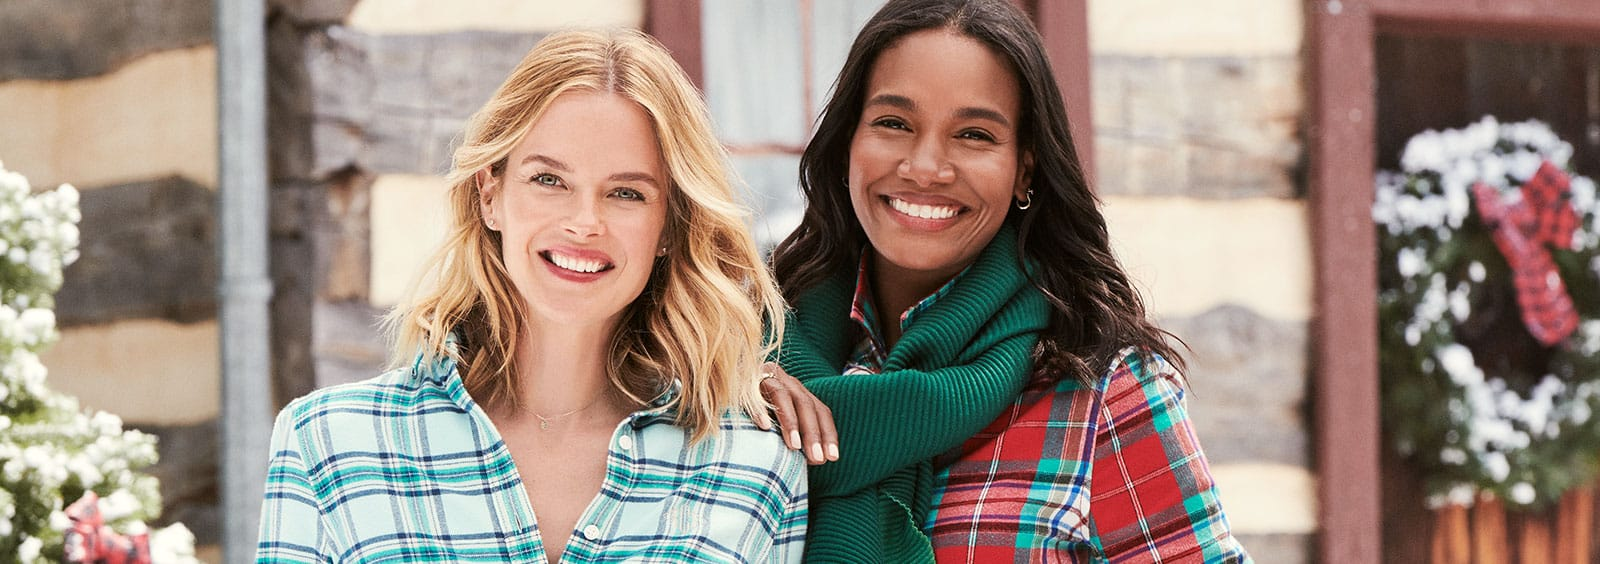 How to Stay Stylish in Flannel This Fall | Lands' End